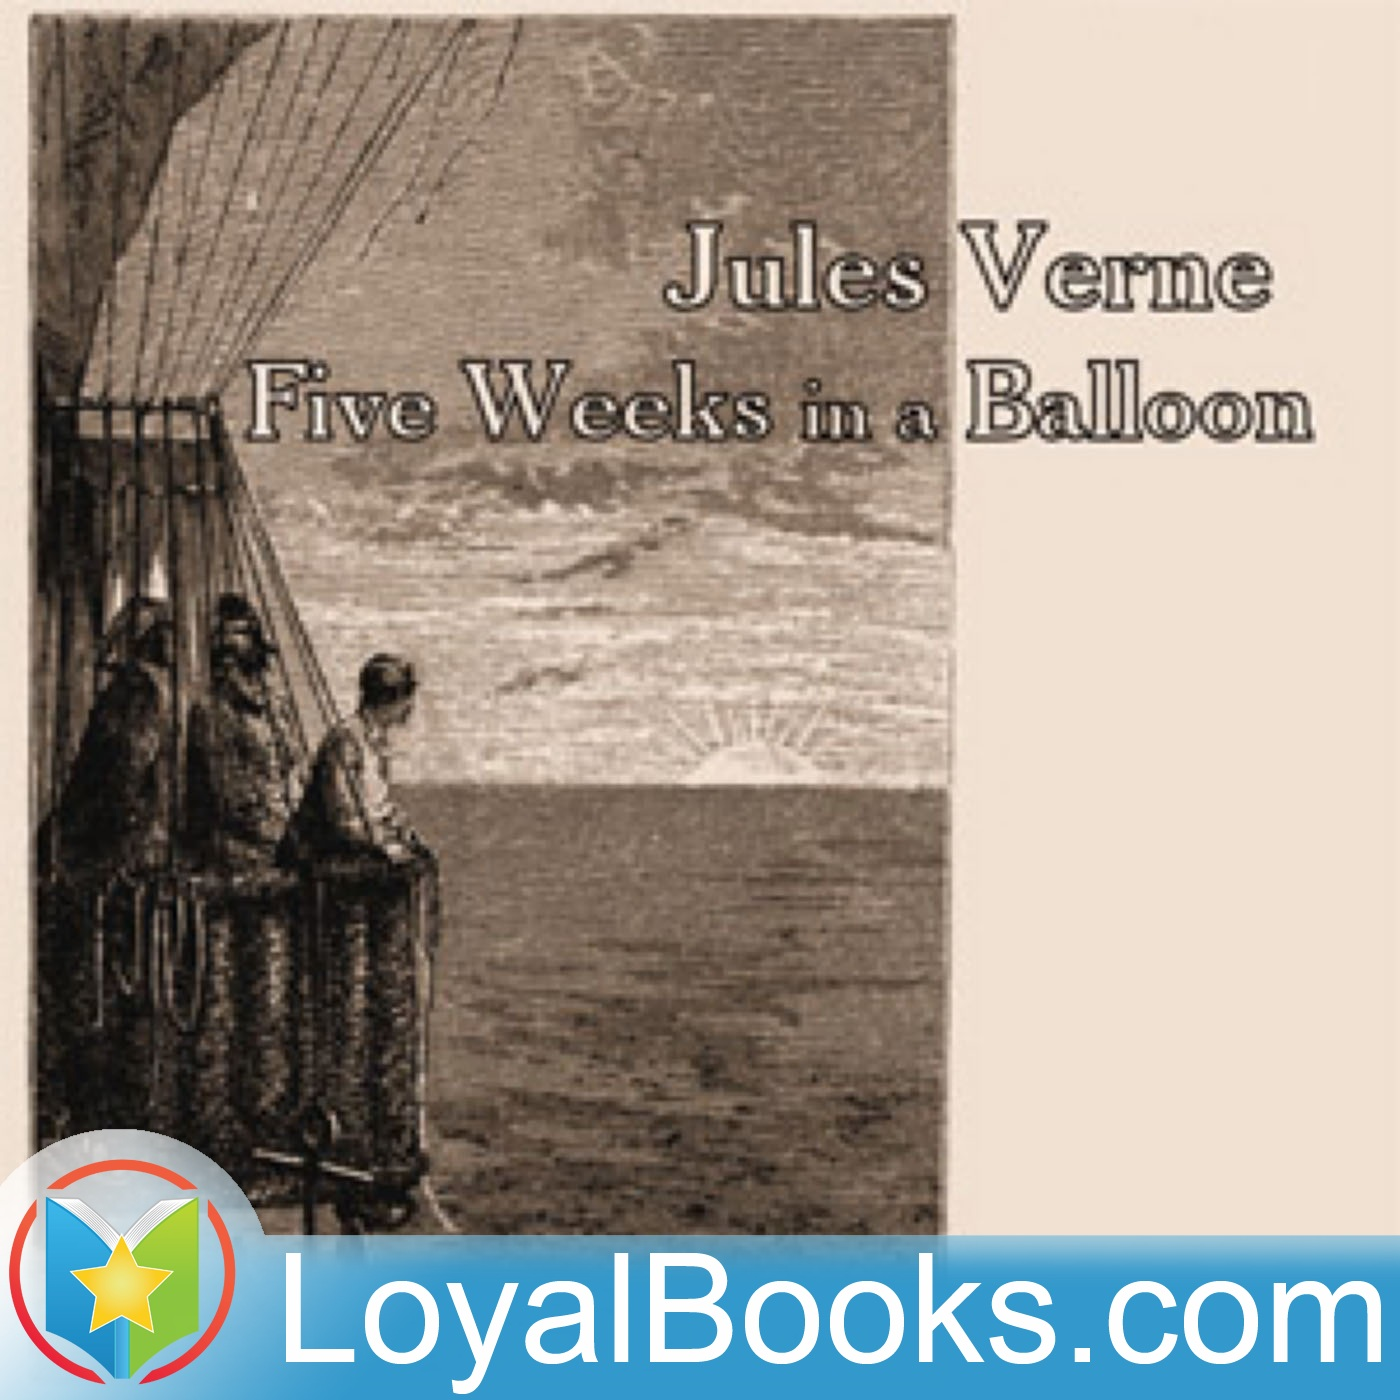 <![CDATA[Five Weeks in a Balloon by Jules Verne]]>